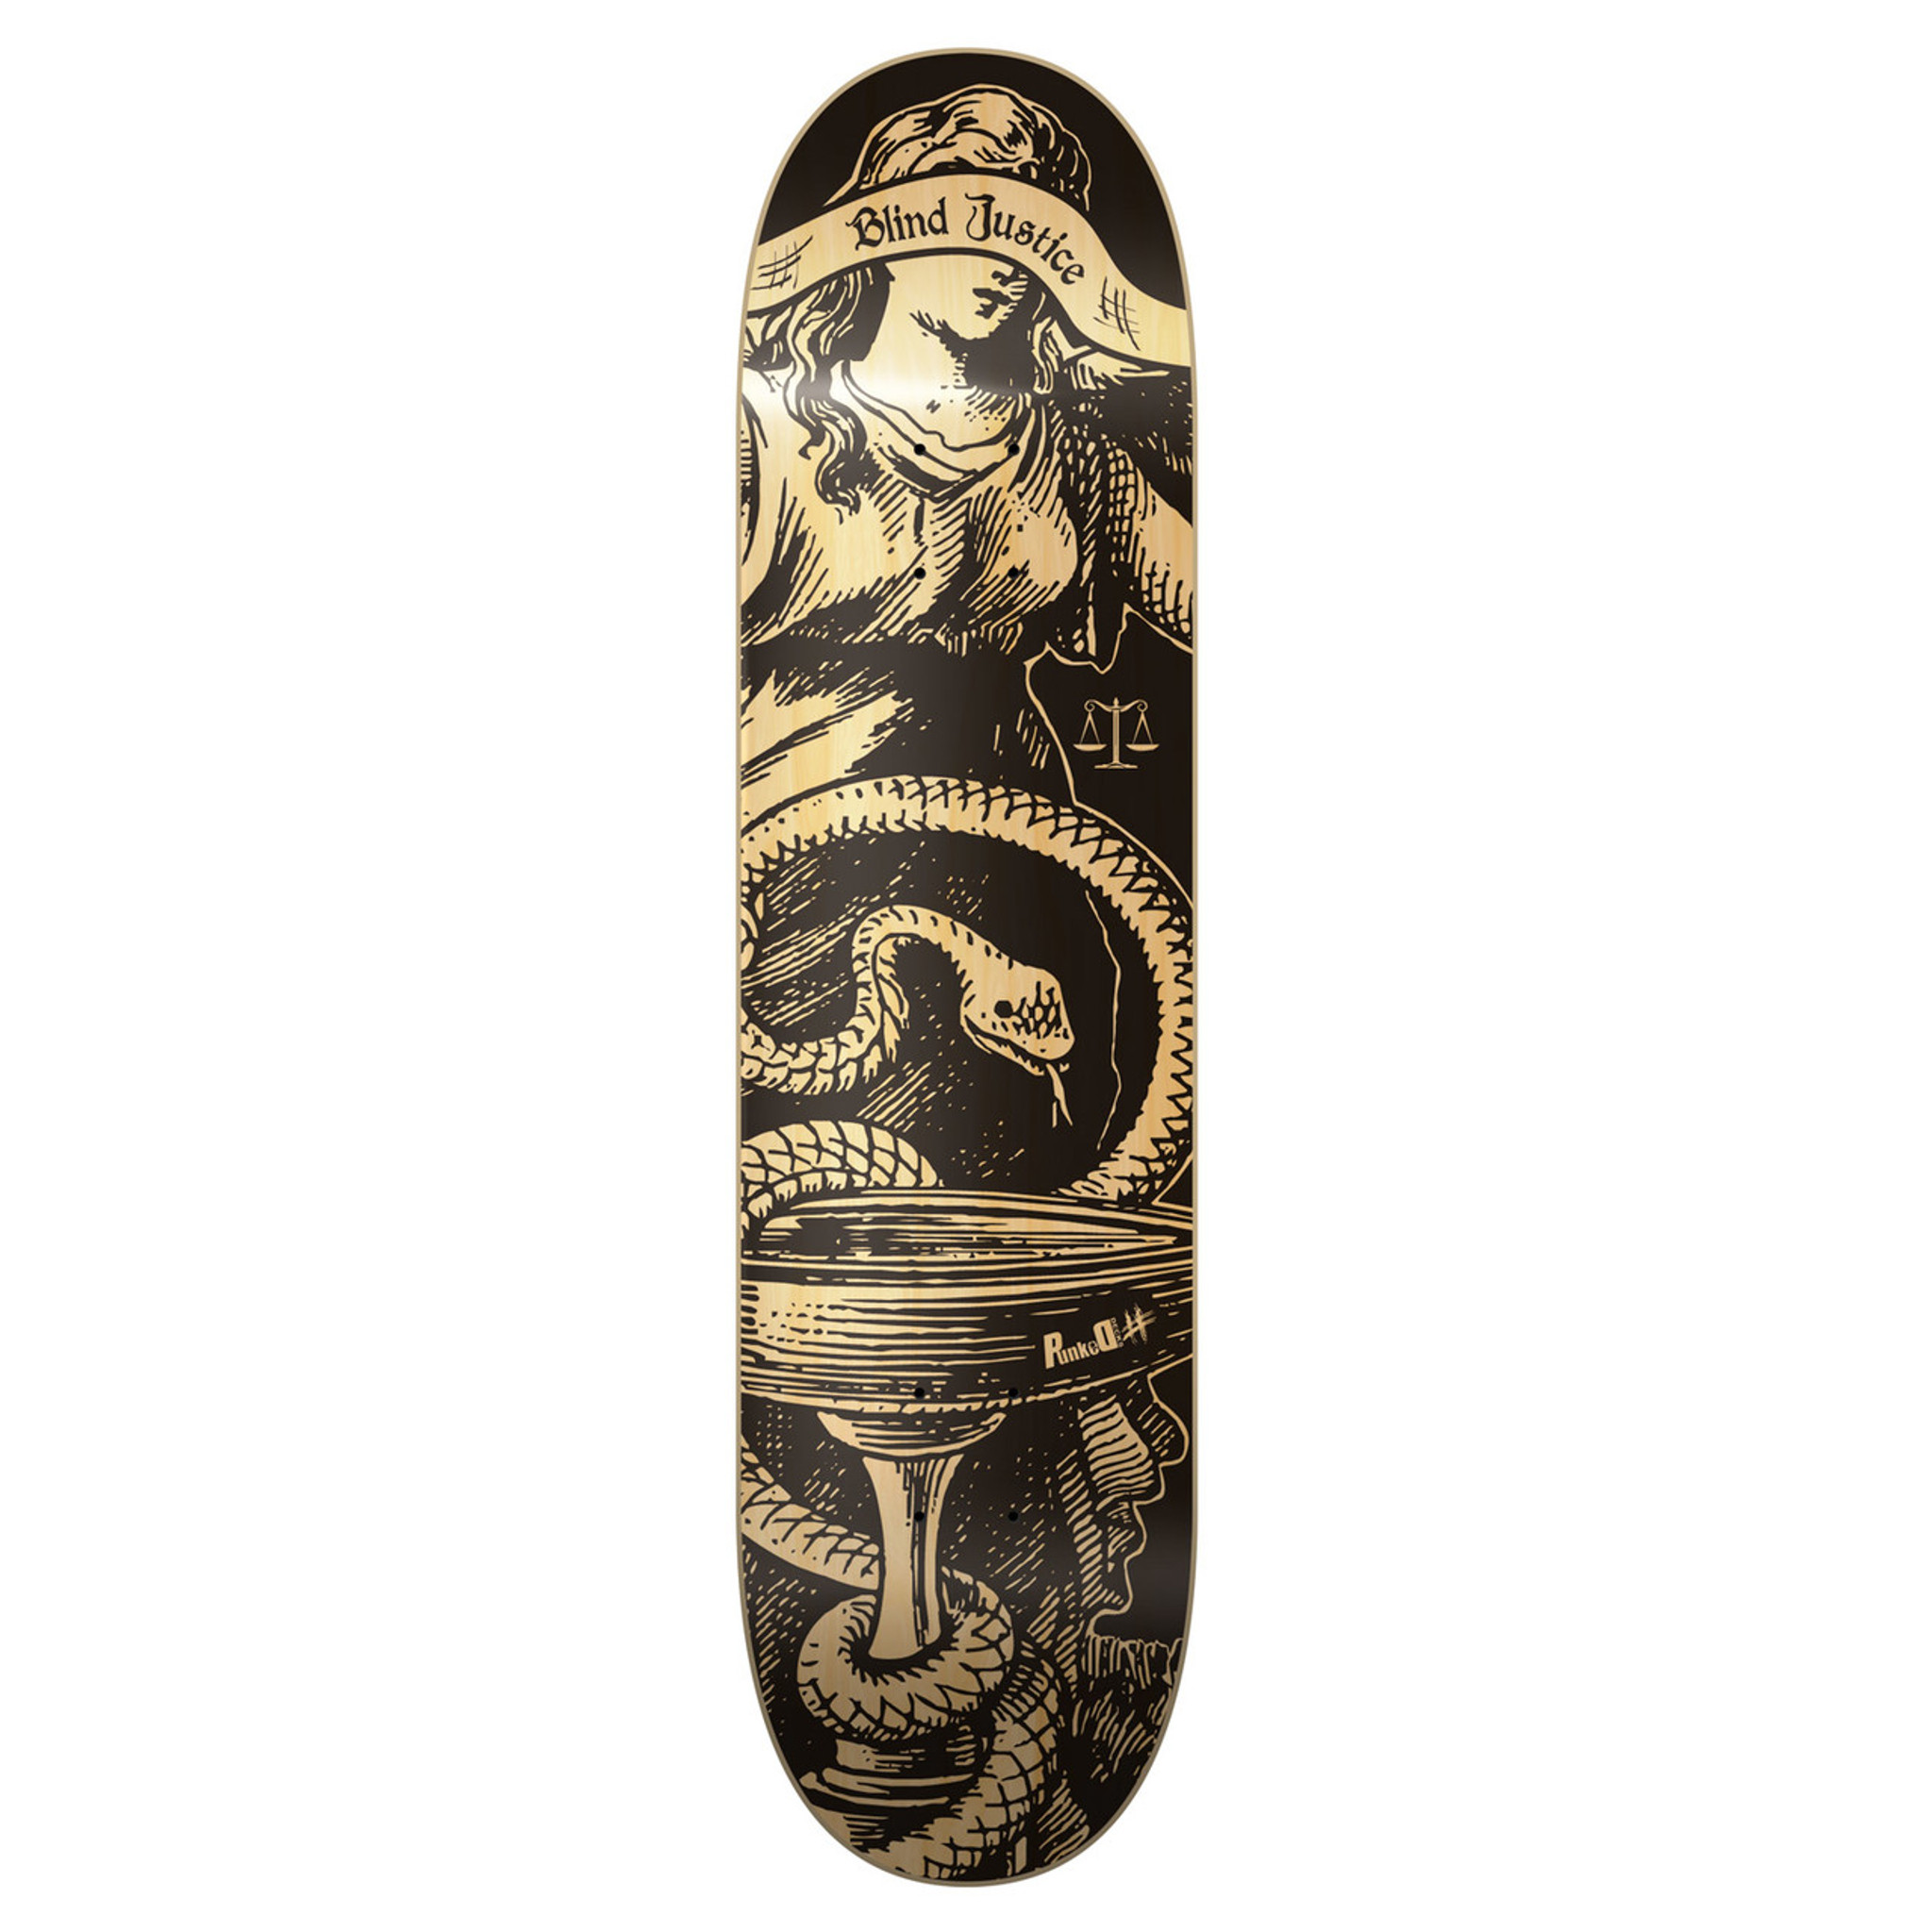 8.5 inch Yocaher Graphic Natural Blind Justice Skateboard Deck